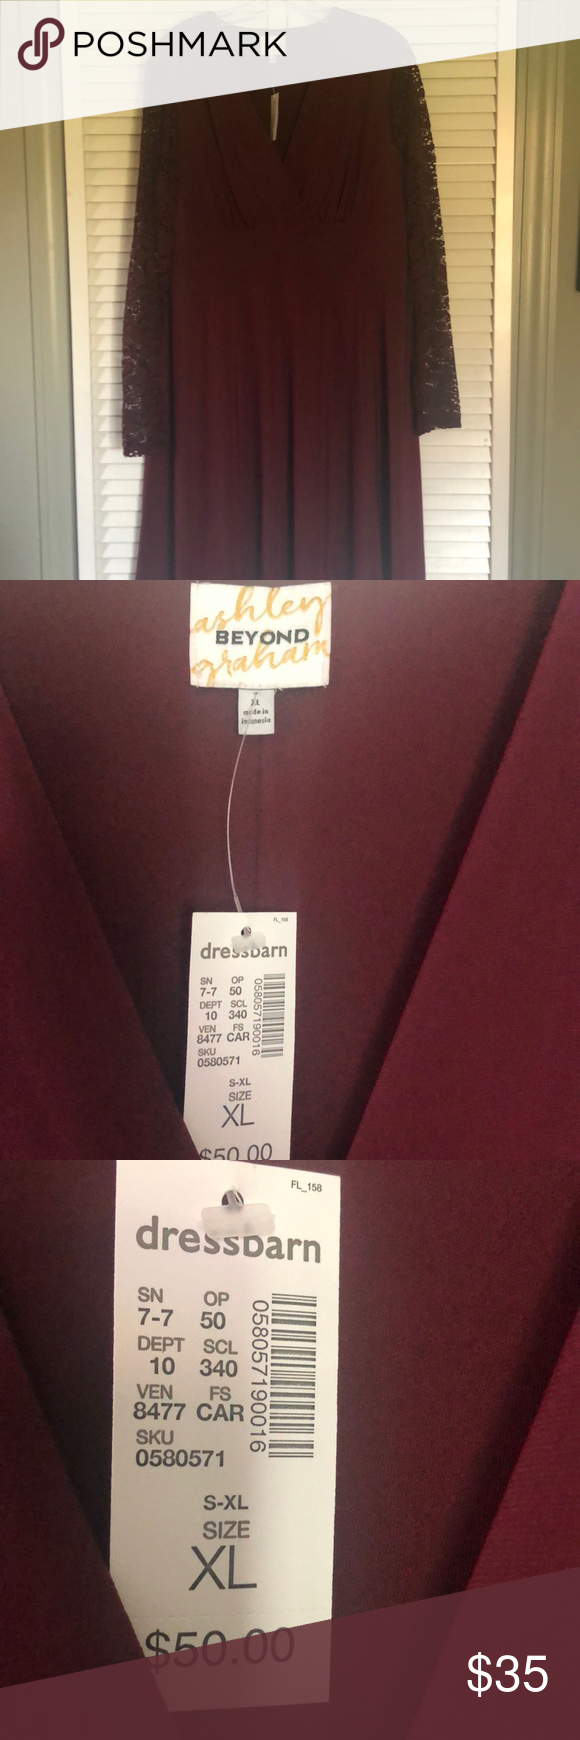 5860a32d721 NWT Dress Barn Ashley Graham Collection dress Never warn with tags still  attached burgundy with lace